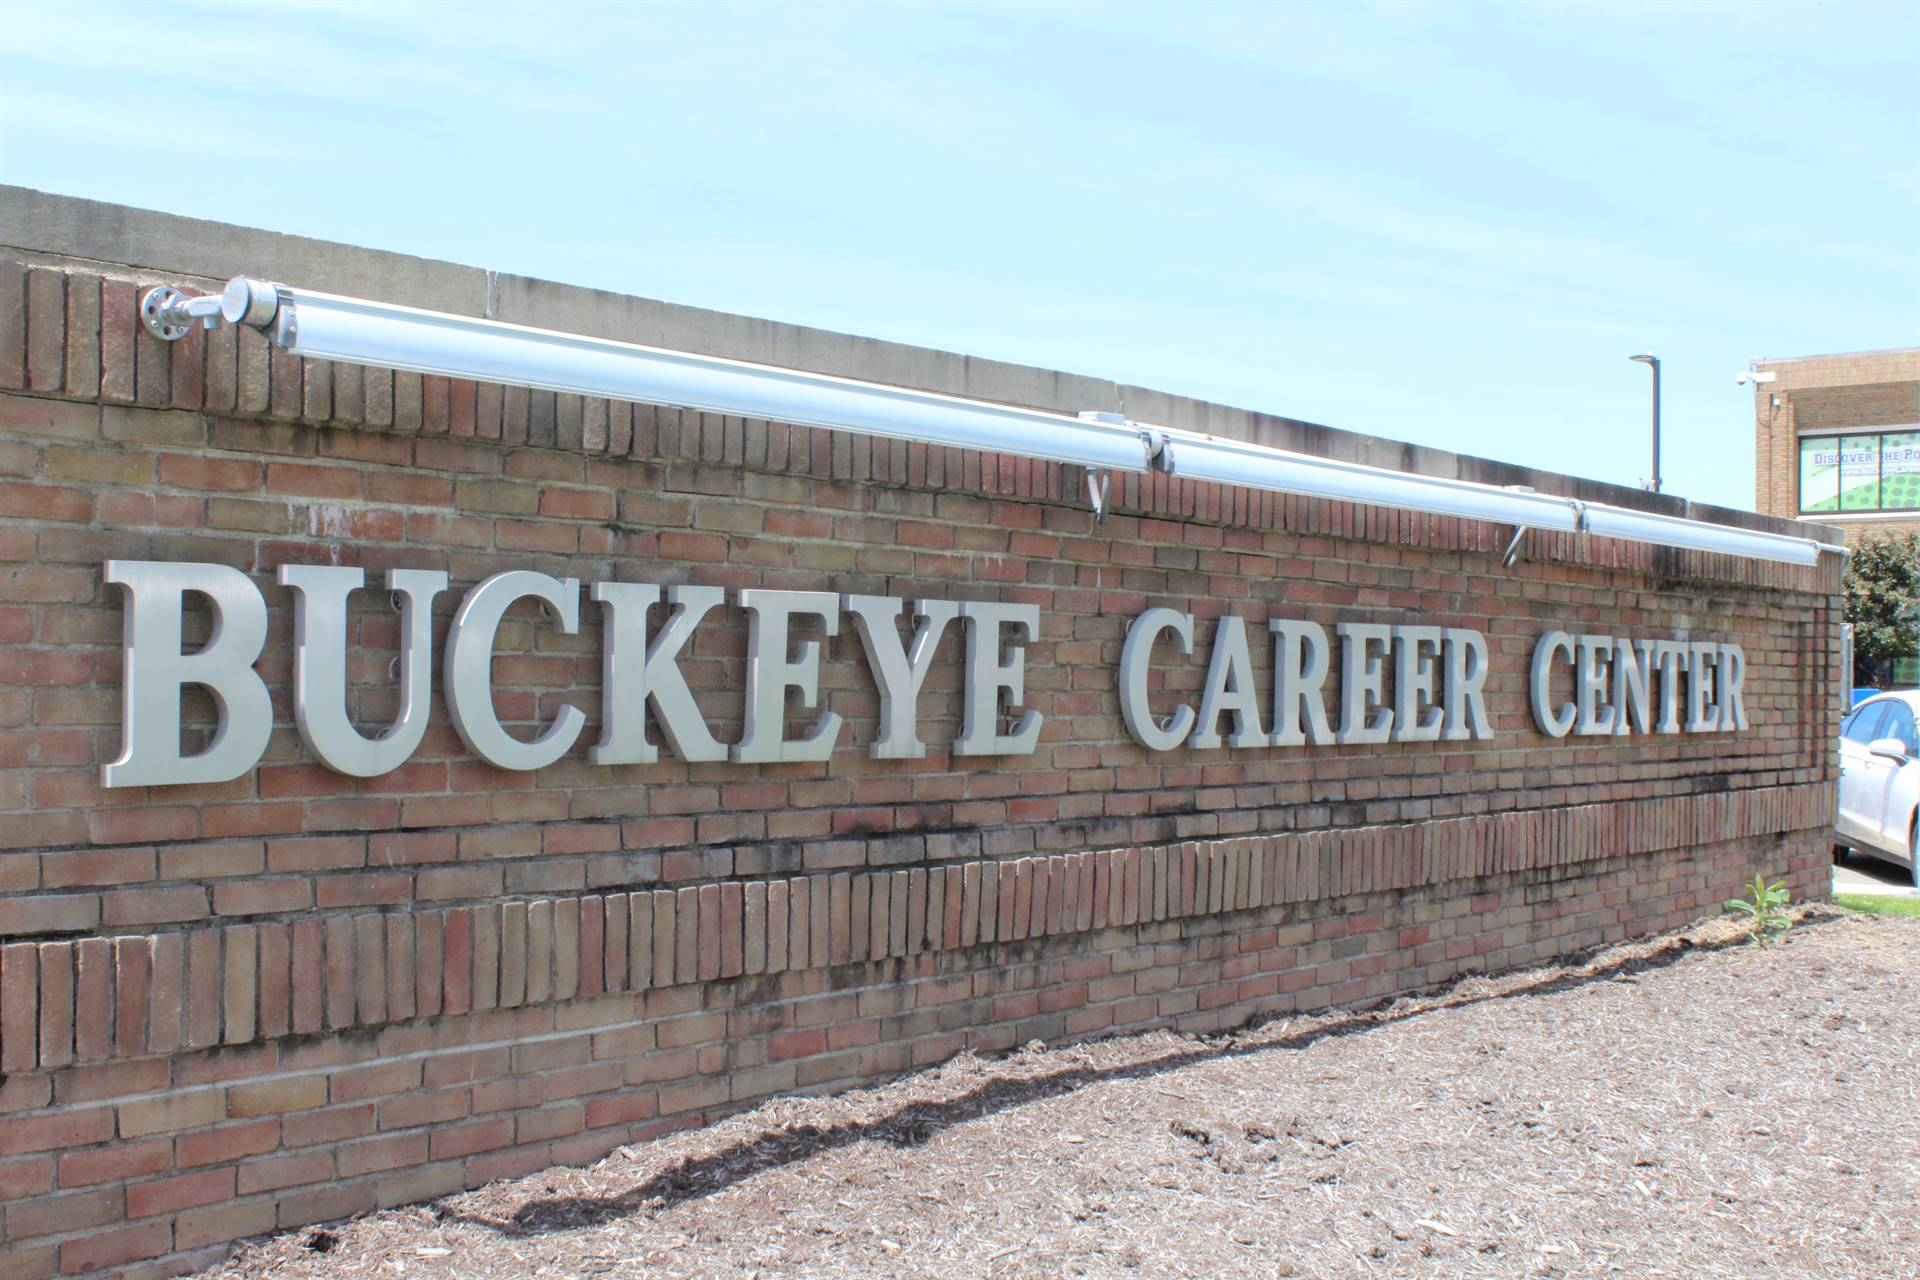 Buckeye Career Center sign